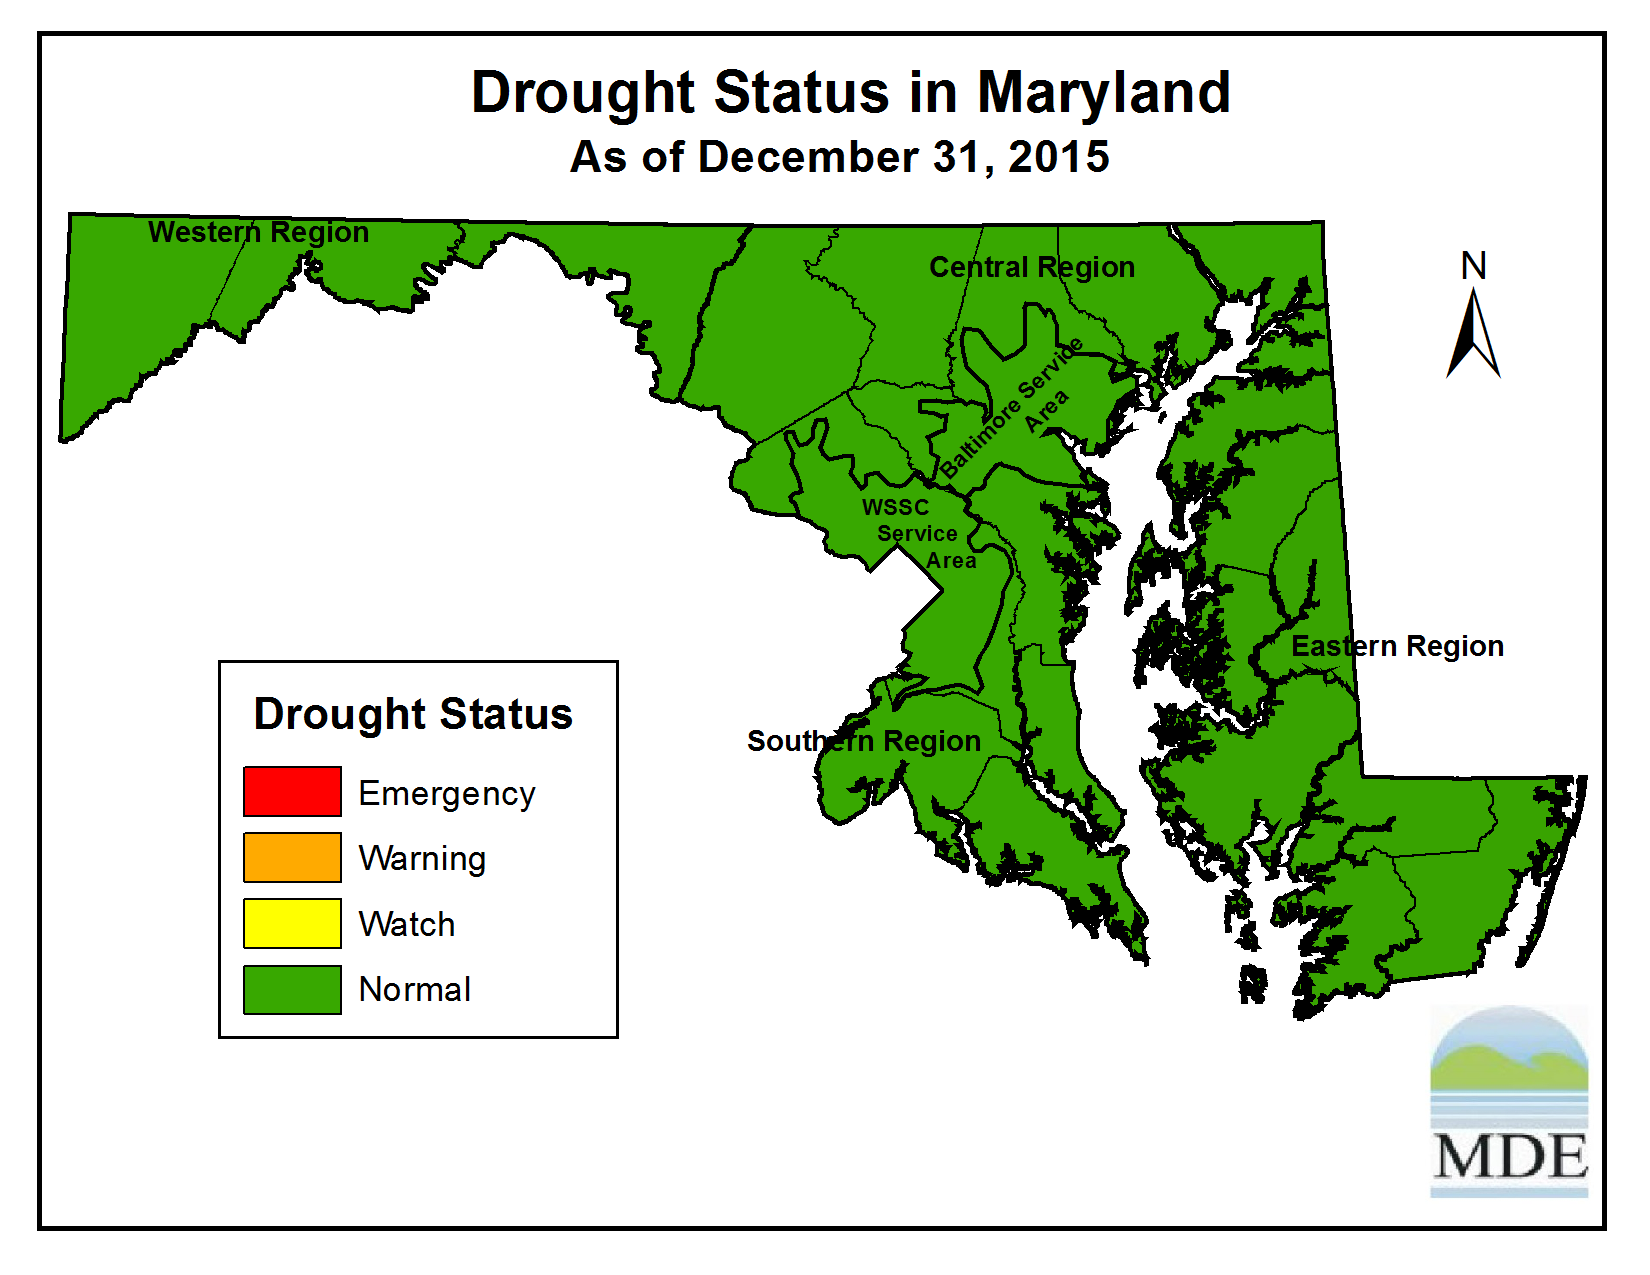 Drought Status as of December 31, 2015